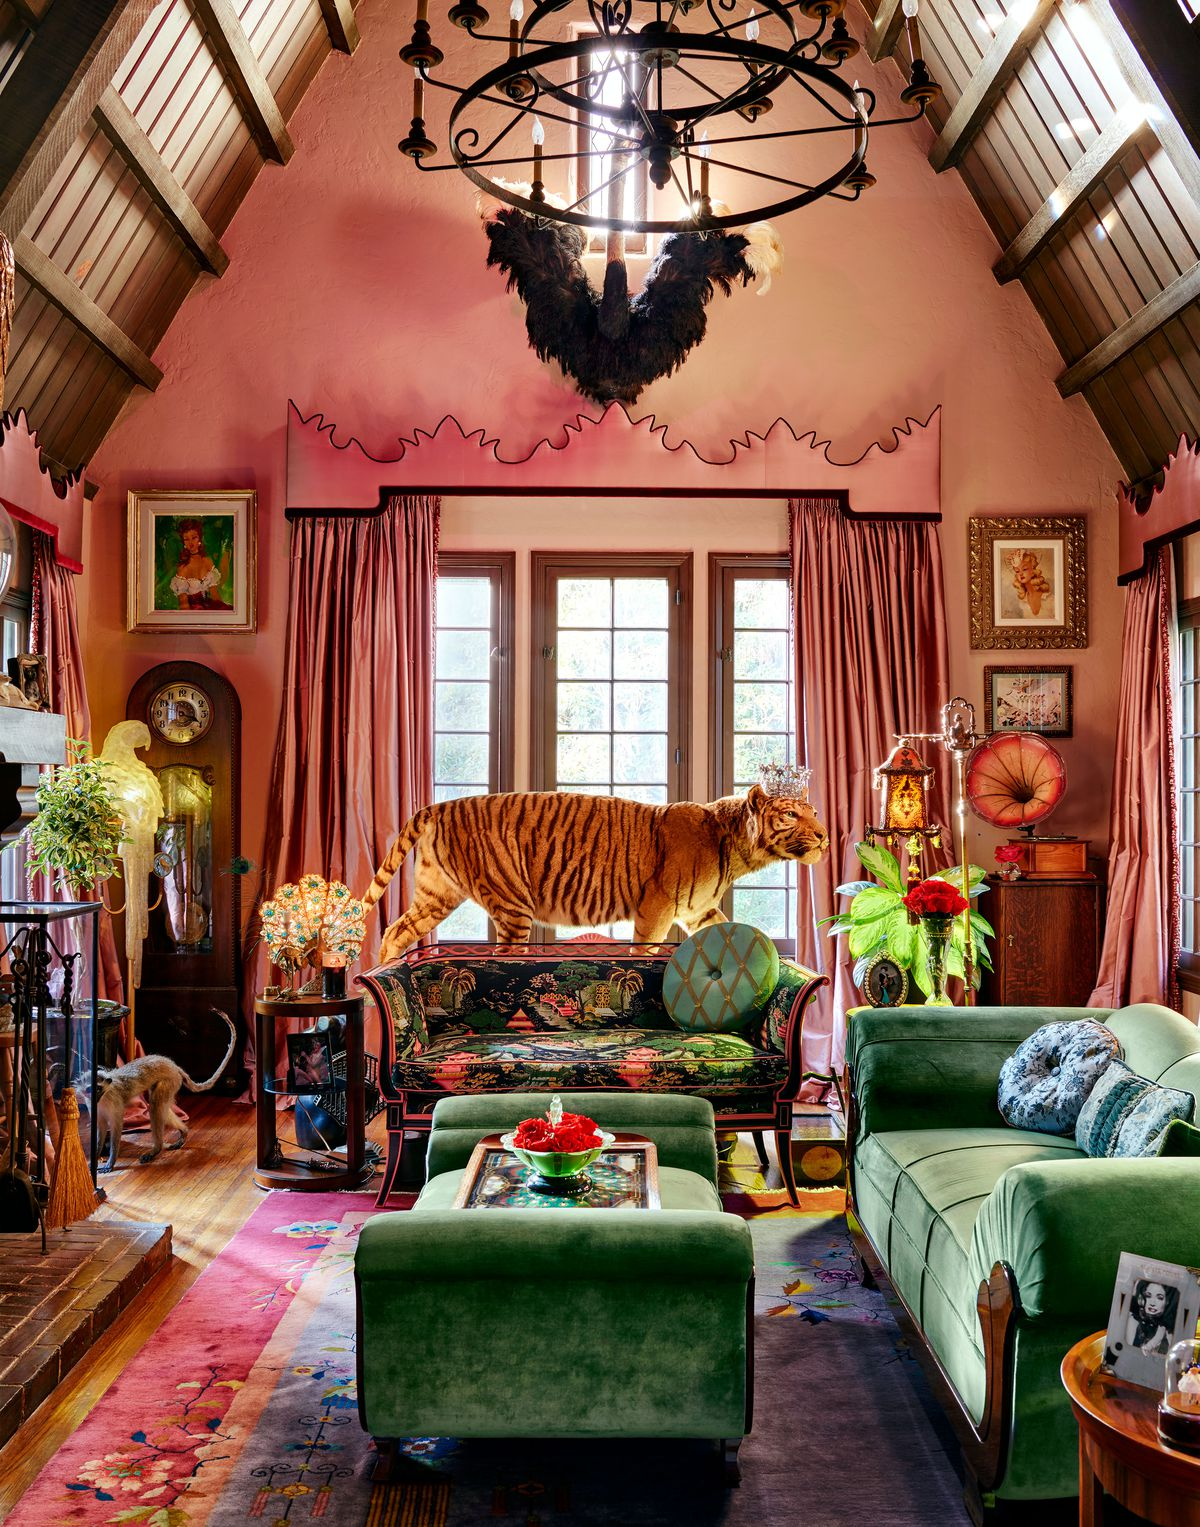 A pink room with many vintage objects in it, including taxidermy of a tiger and a monkey. A lage area rug covers the floor and there is a large ottoman and sofa, both green velvet and in the Art Deco style.